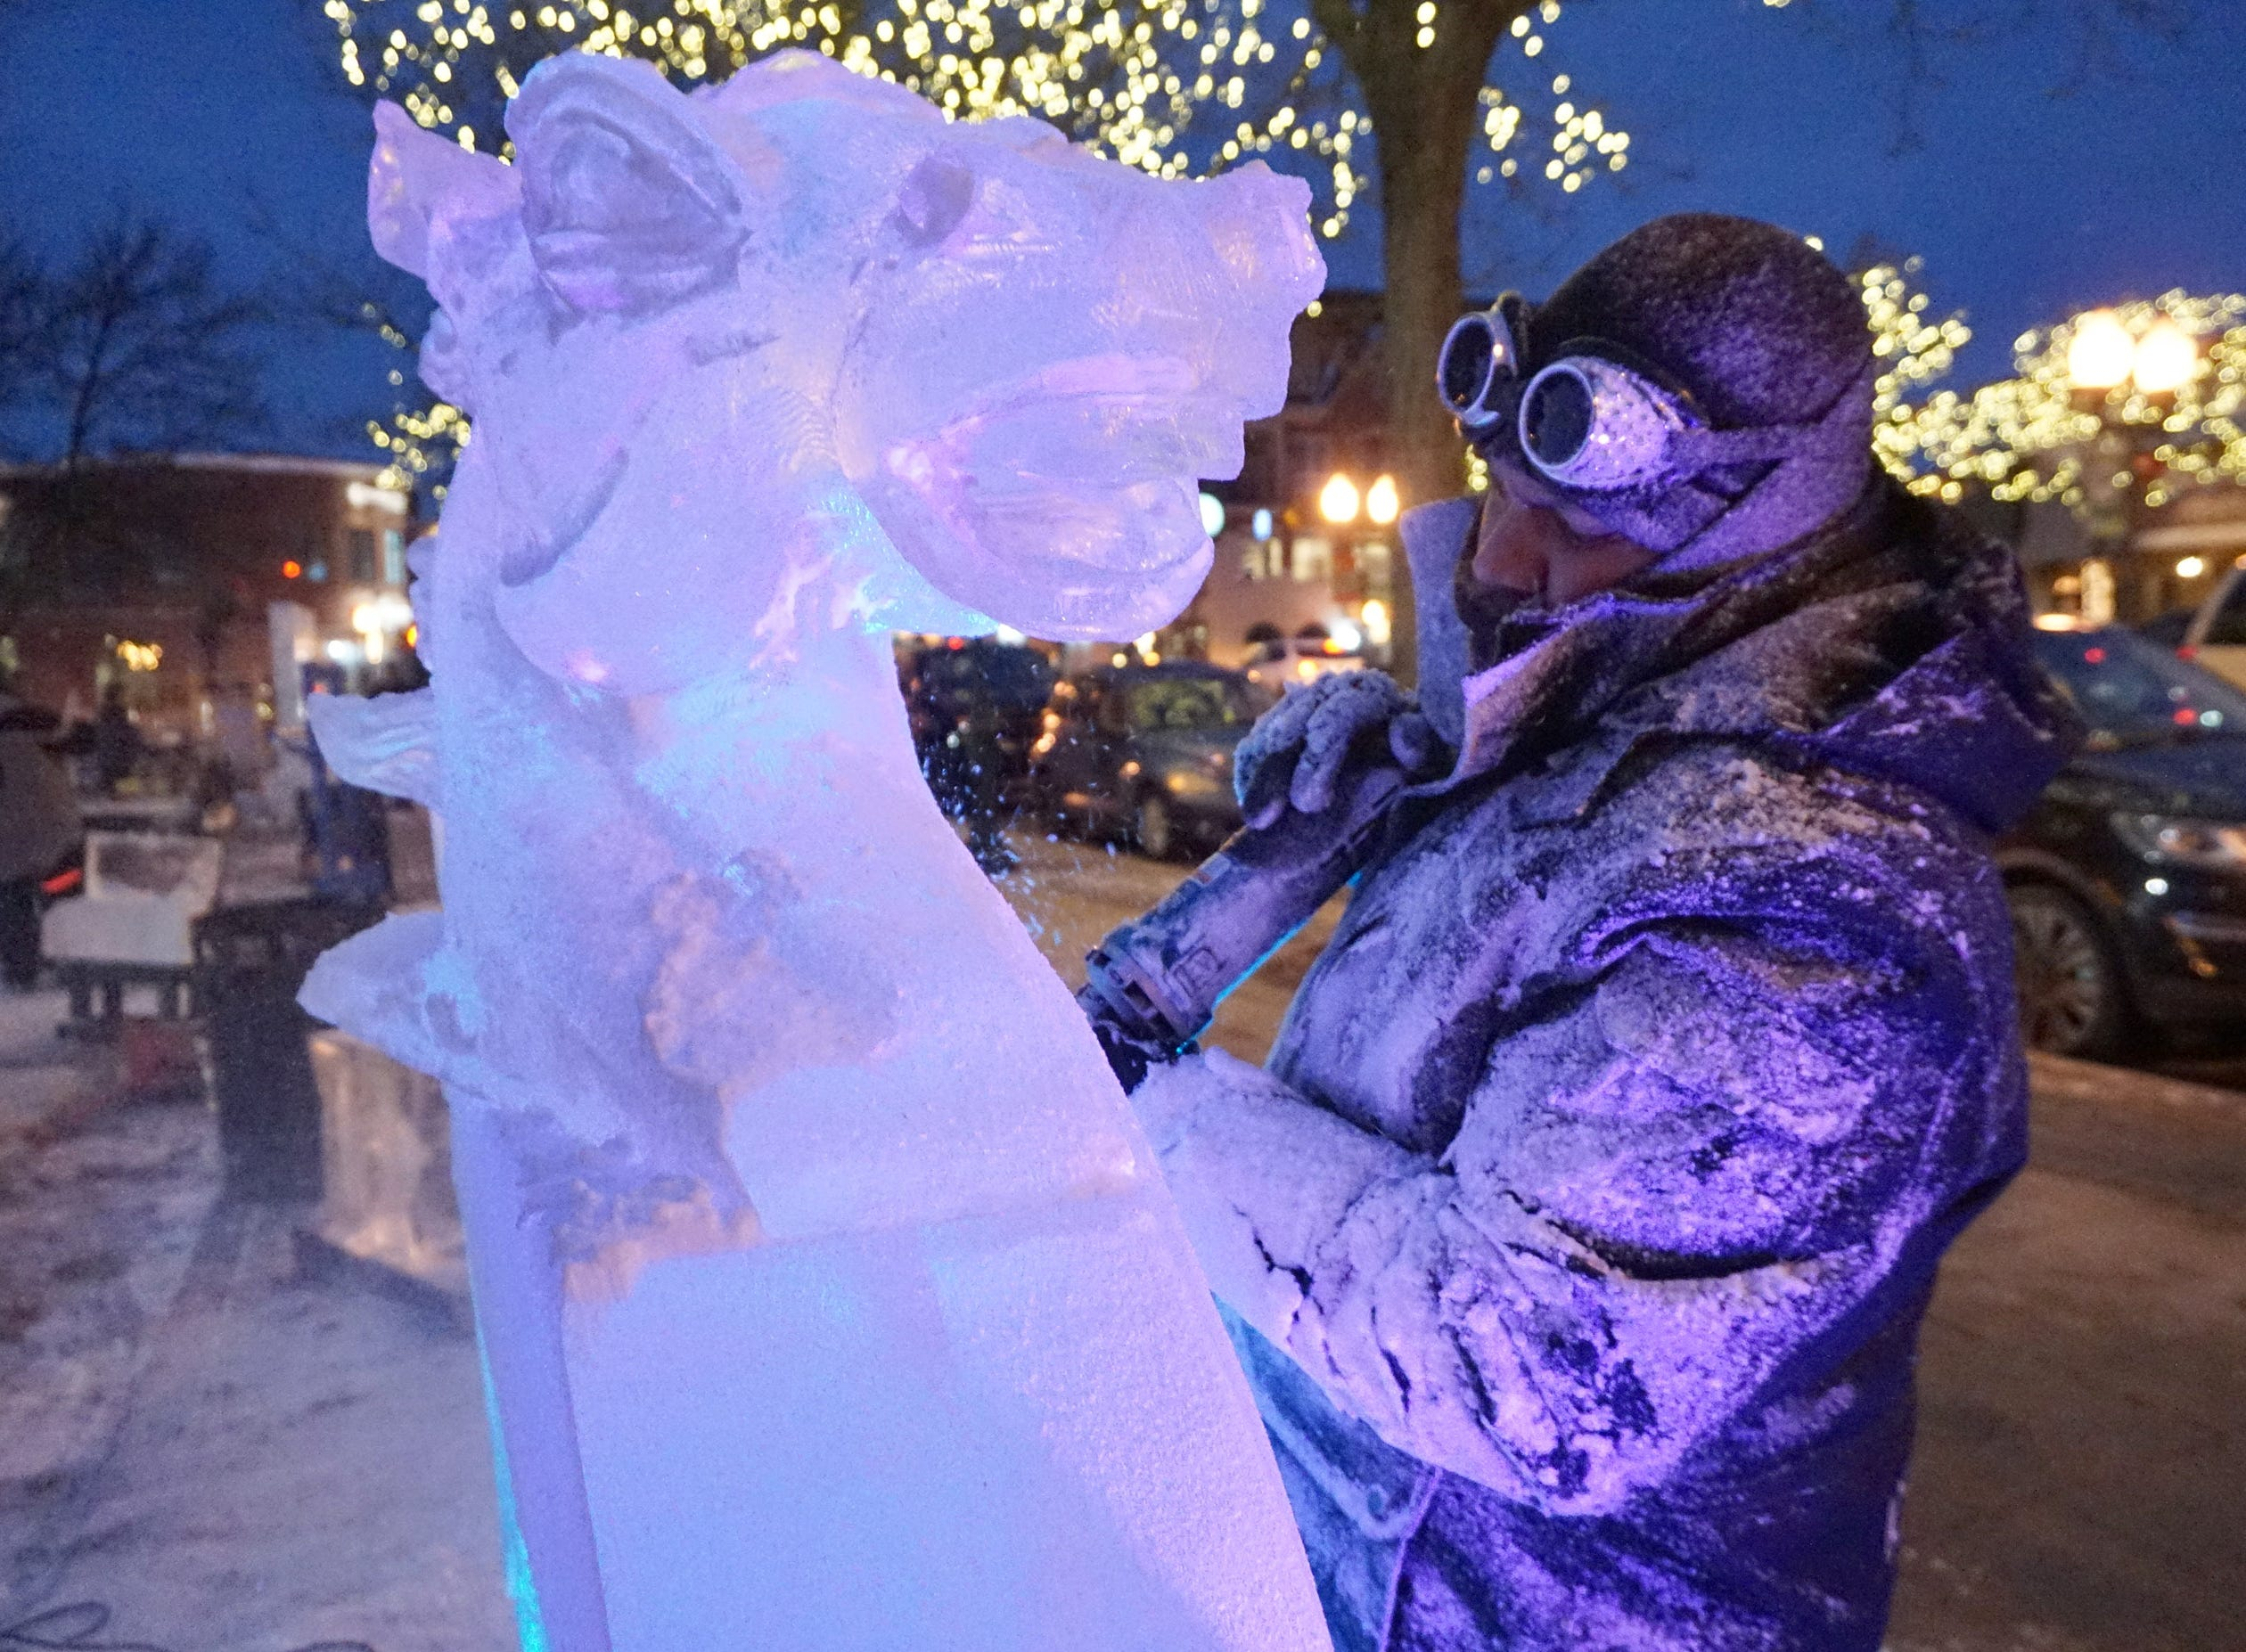 Max Zuleta works on the main feature by Elegant Ice for the Plymouth Ice Festival that runs Jan. 11-13.